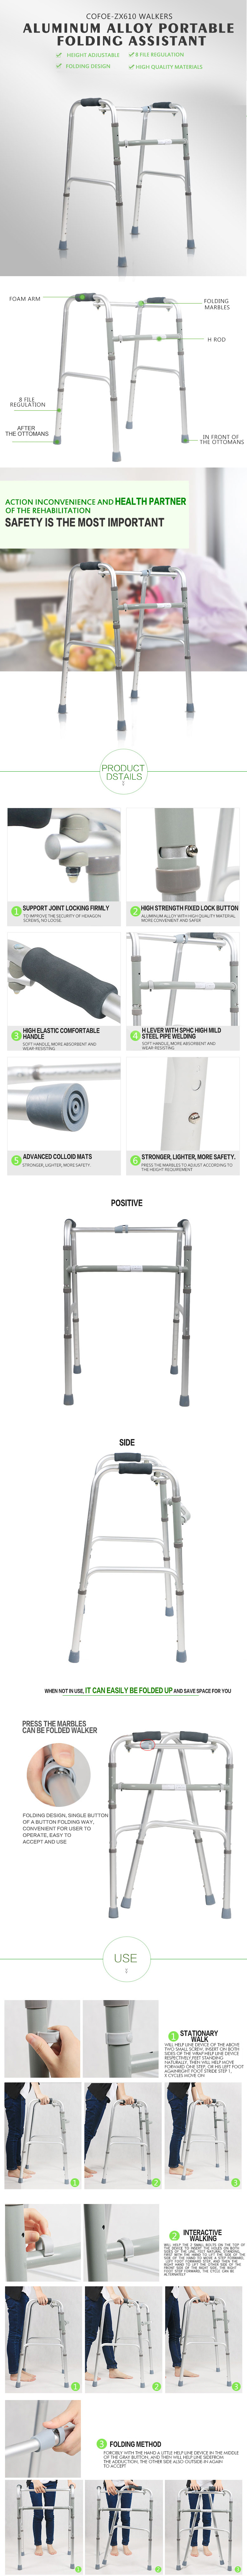 Aluminum Walking Aids